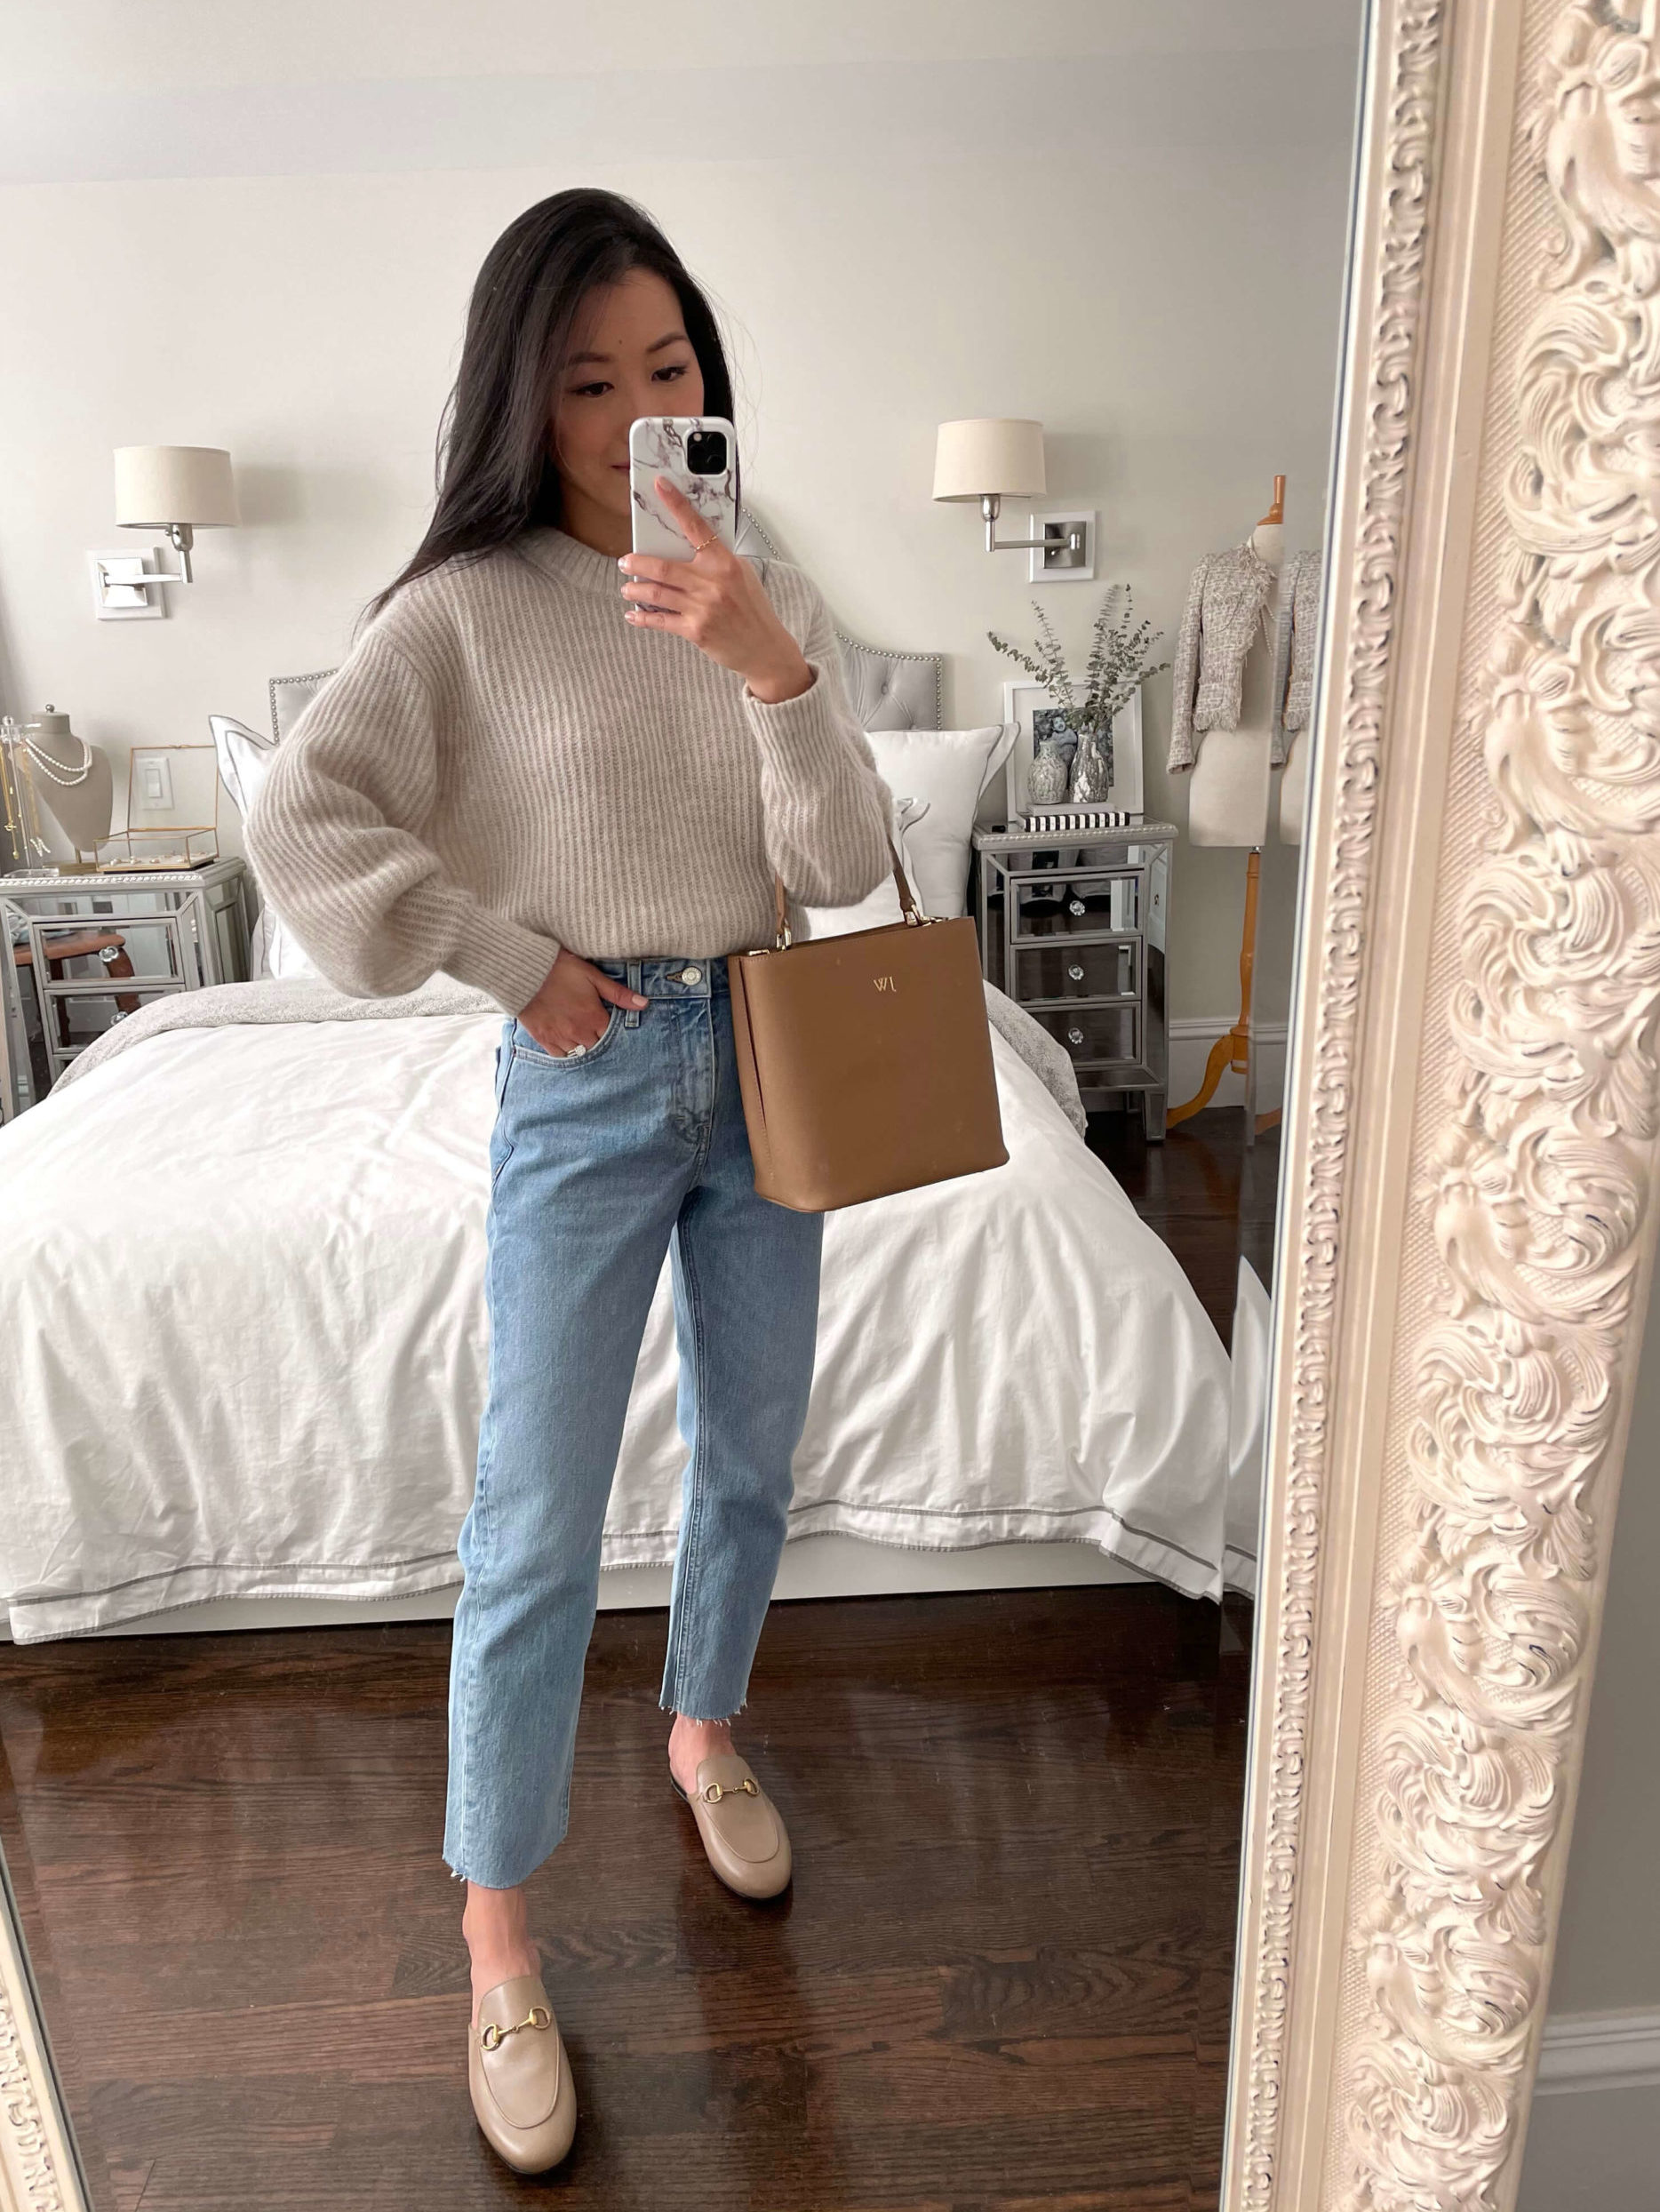 Gucci loafer mud everlane alpaca sweater petite spring outfit